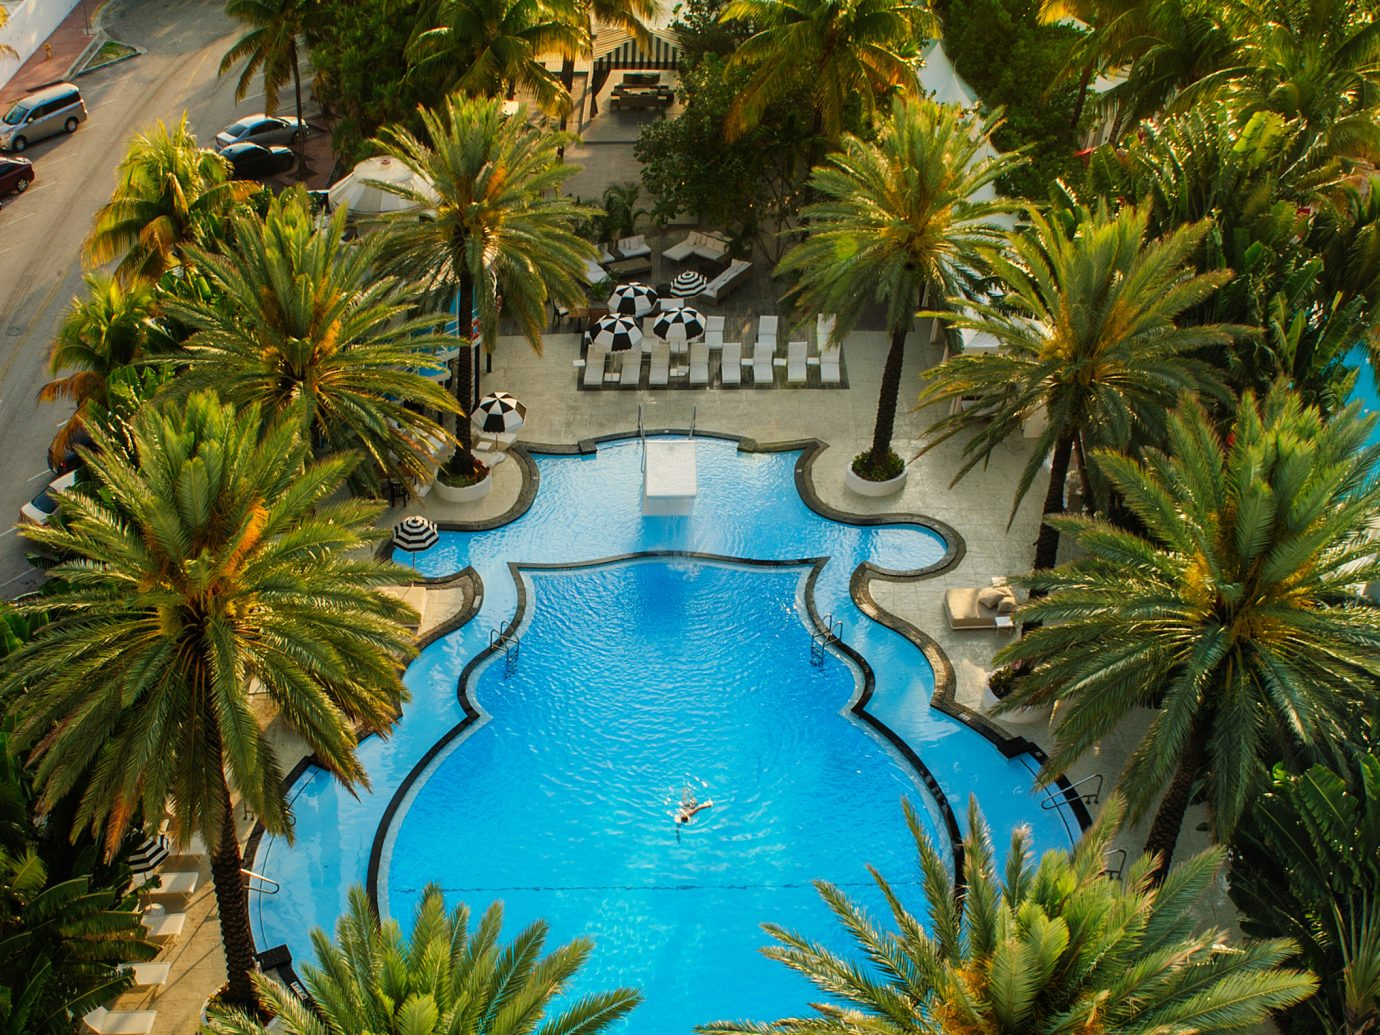 Hotels tree palm plant swimming pool outdoor Resort arecales estate Garden colorful lined surrounded Christmas